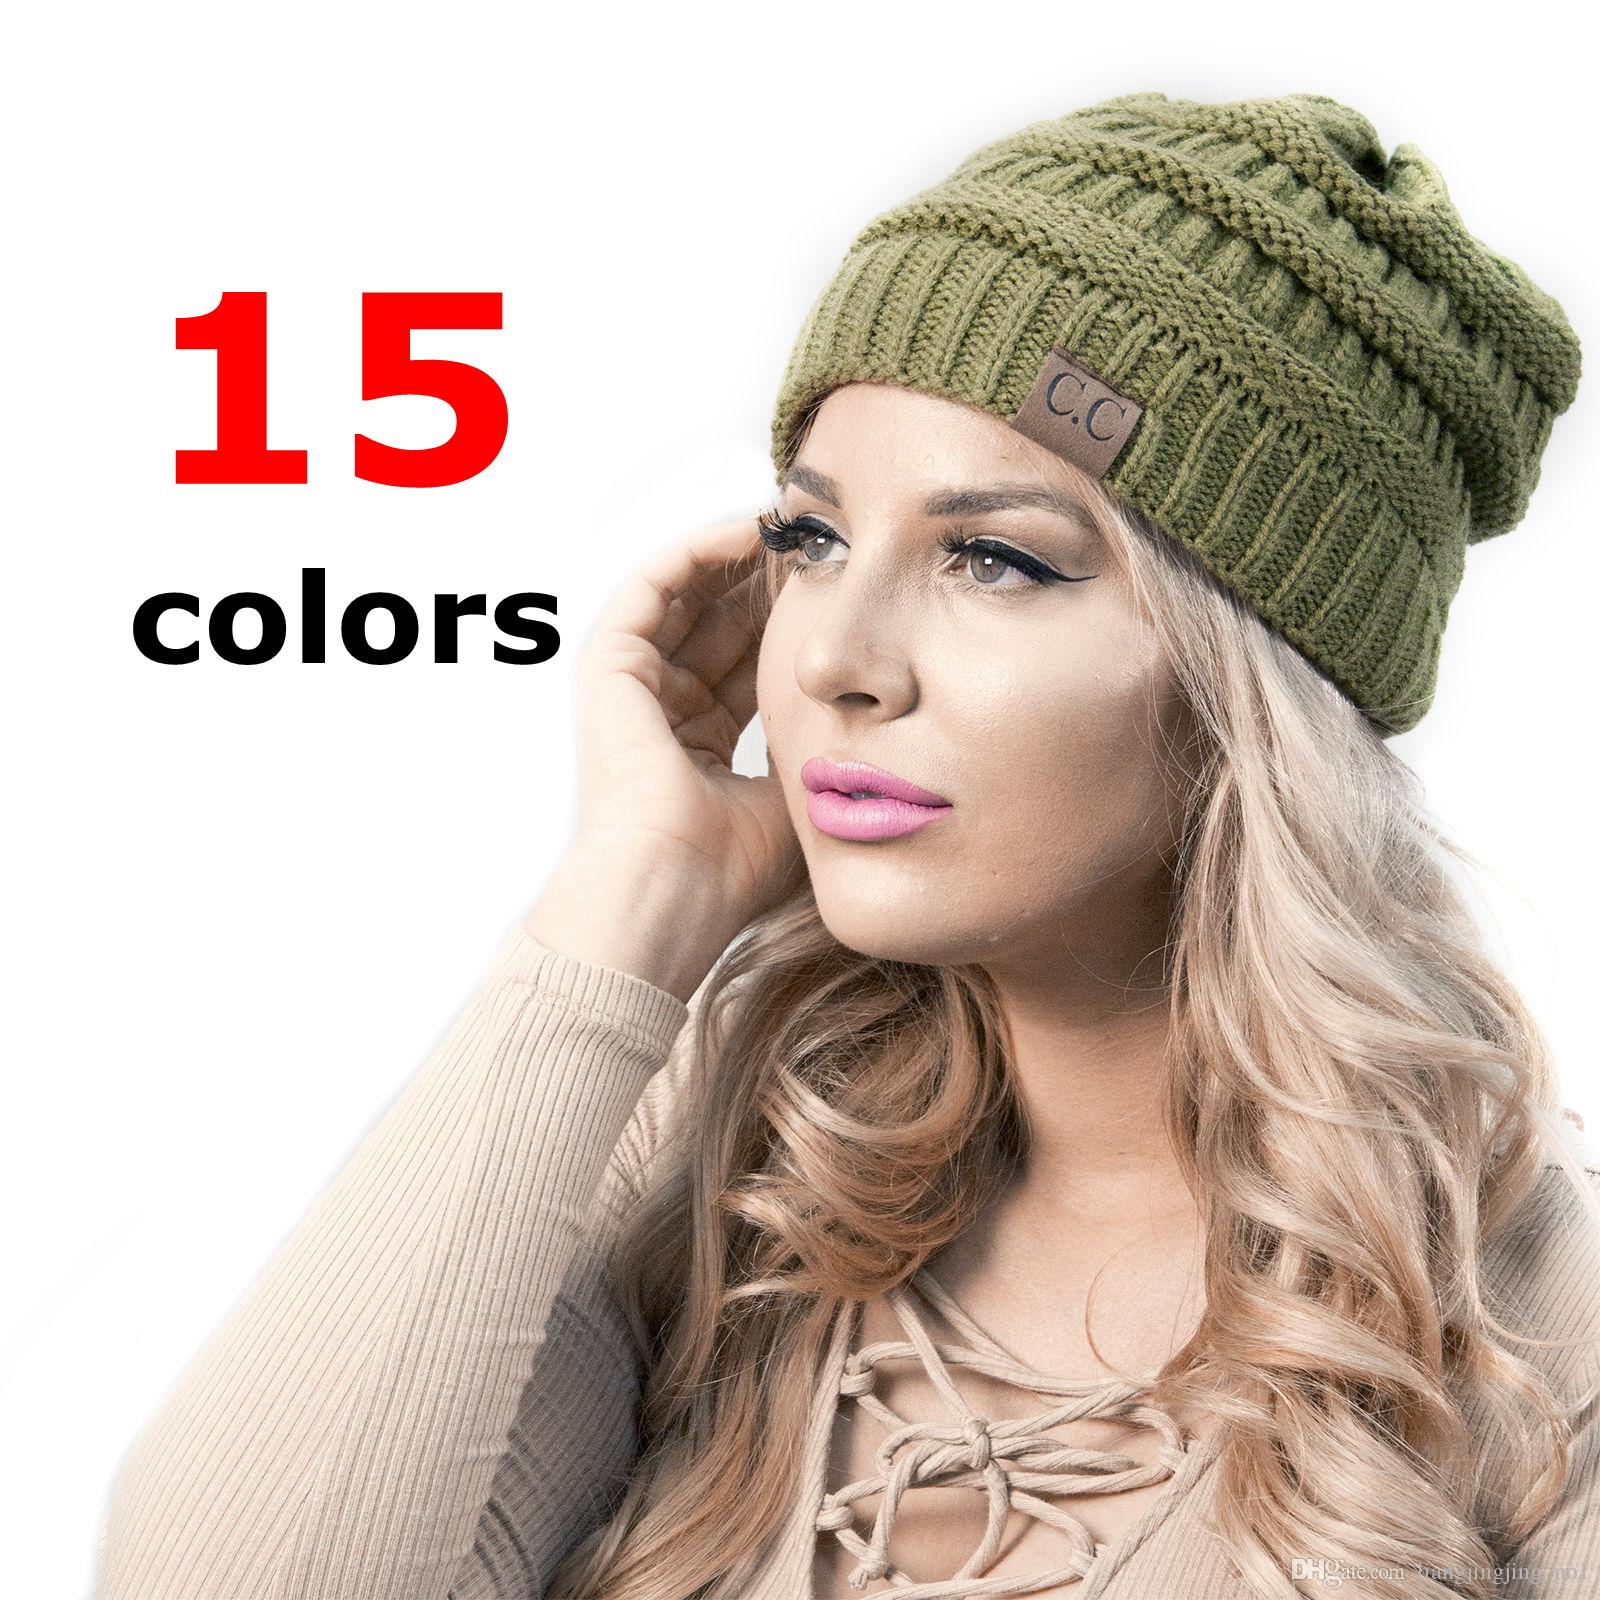 ... on wholesale 69b71 3efc5 CC Caps CC Hats Knitted Beanie Fashion Girls  Women Man Winter Warm ... cb5f84417fbf